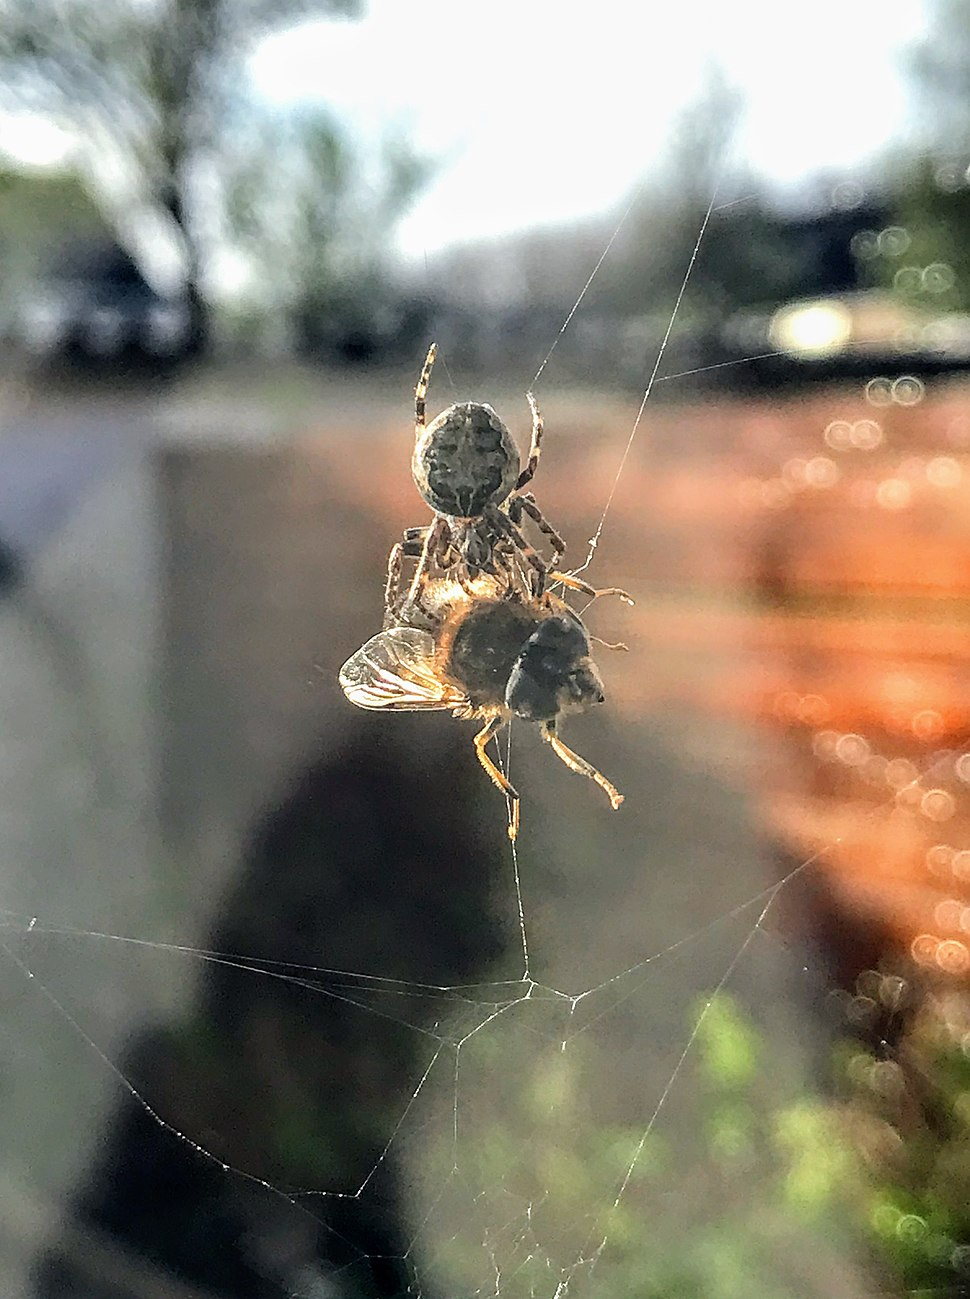 Fly captured by spider in web